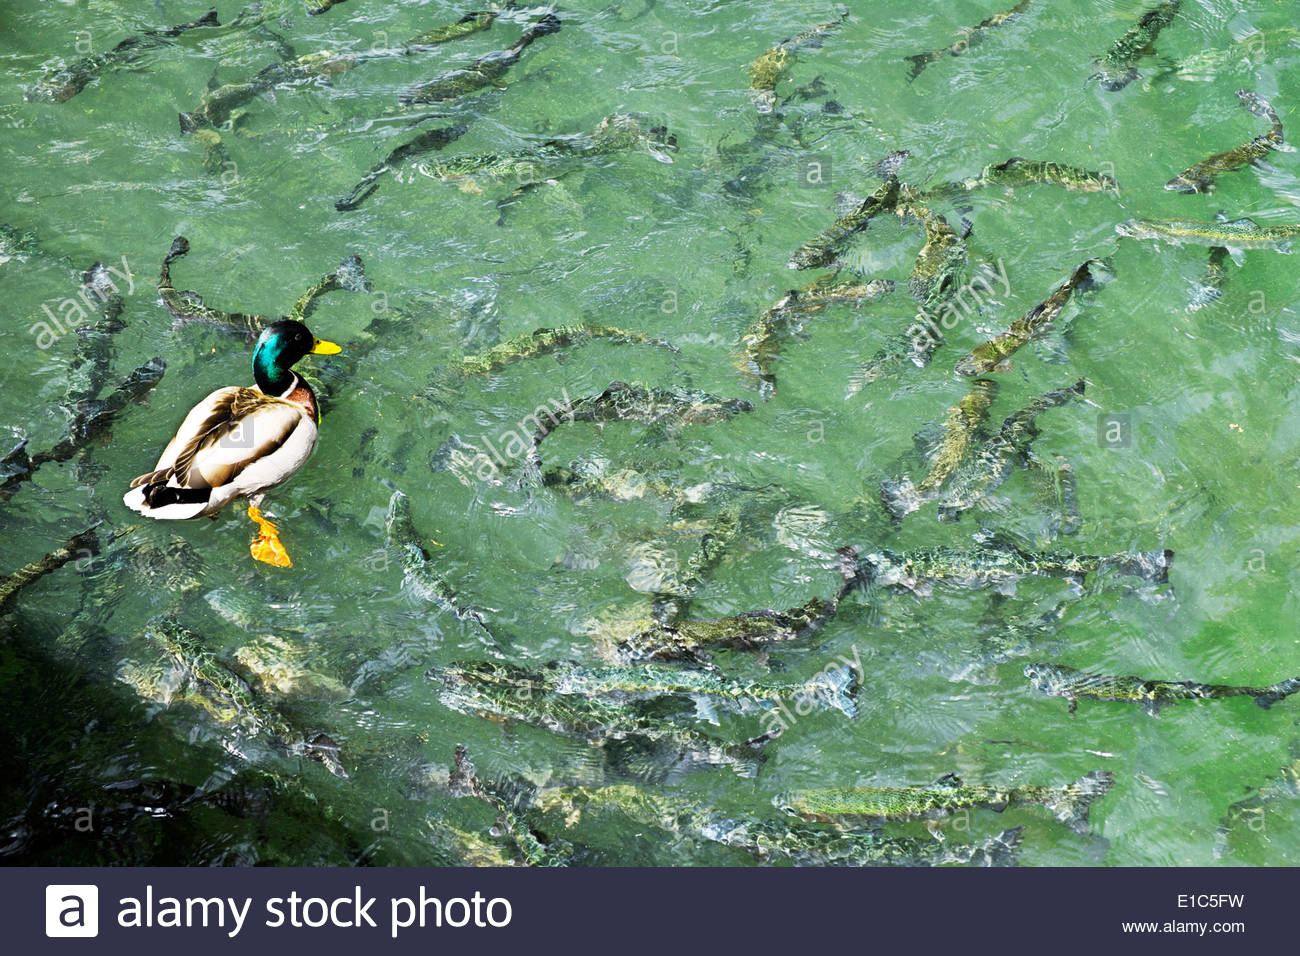 Mallard duck swims above trout in the pond at Mespelbrunn Castle, Germany. - Stock Image